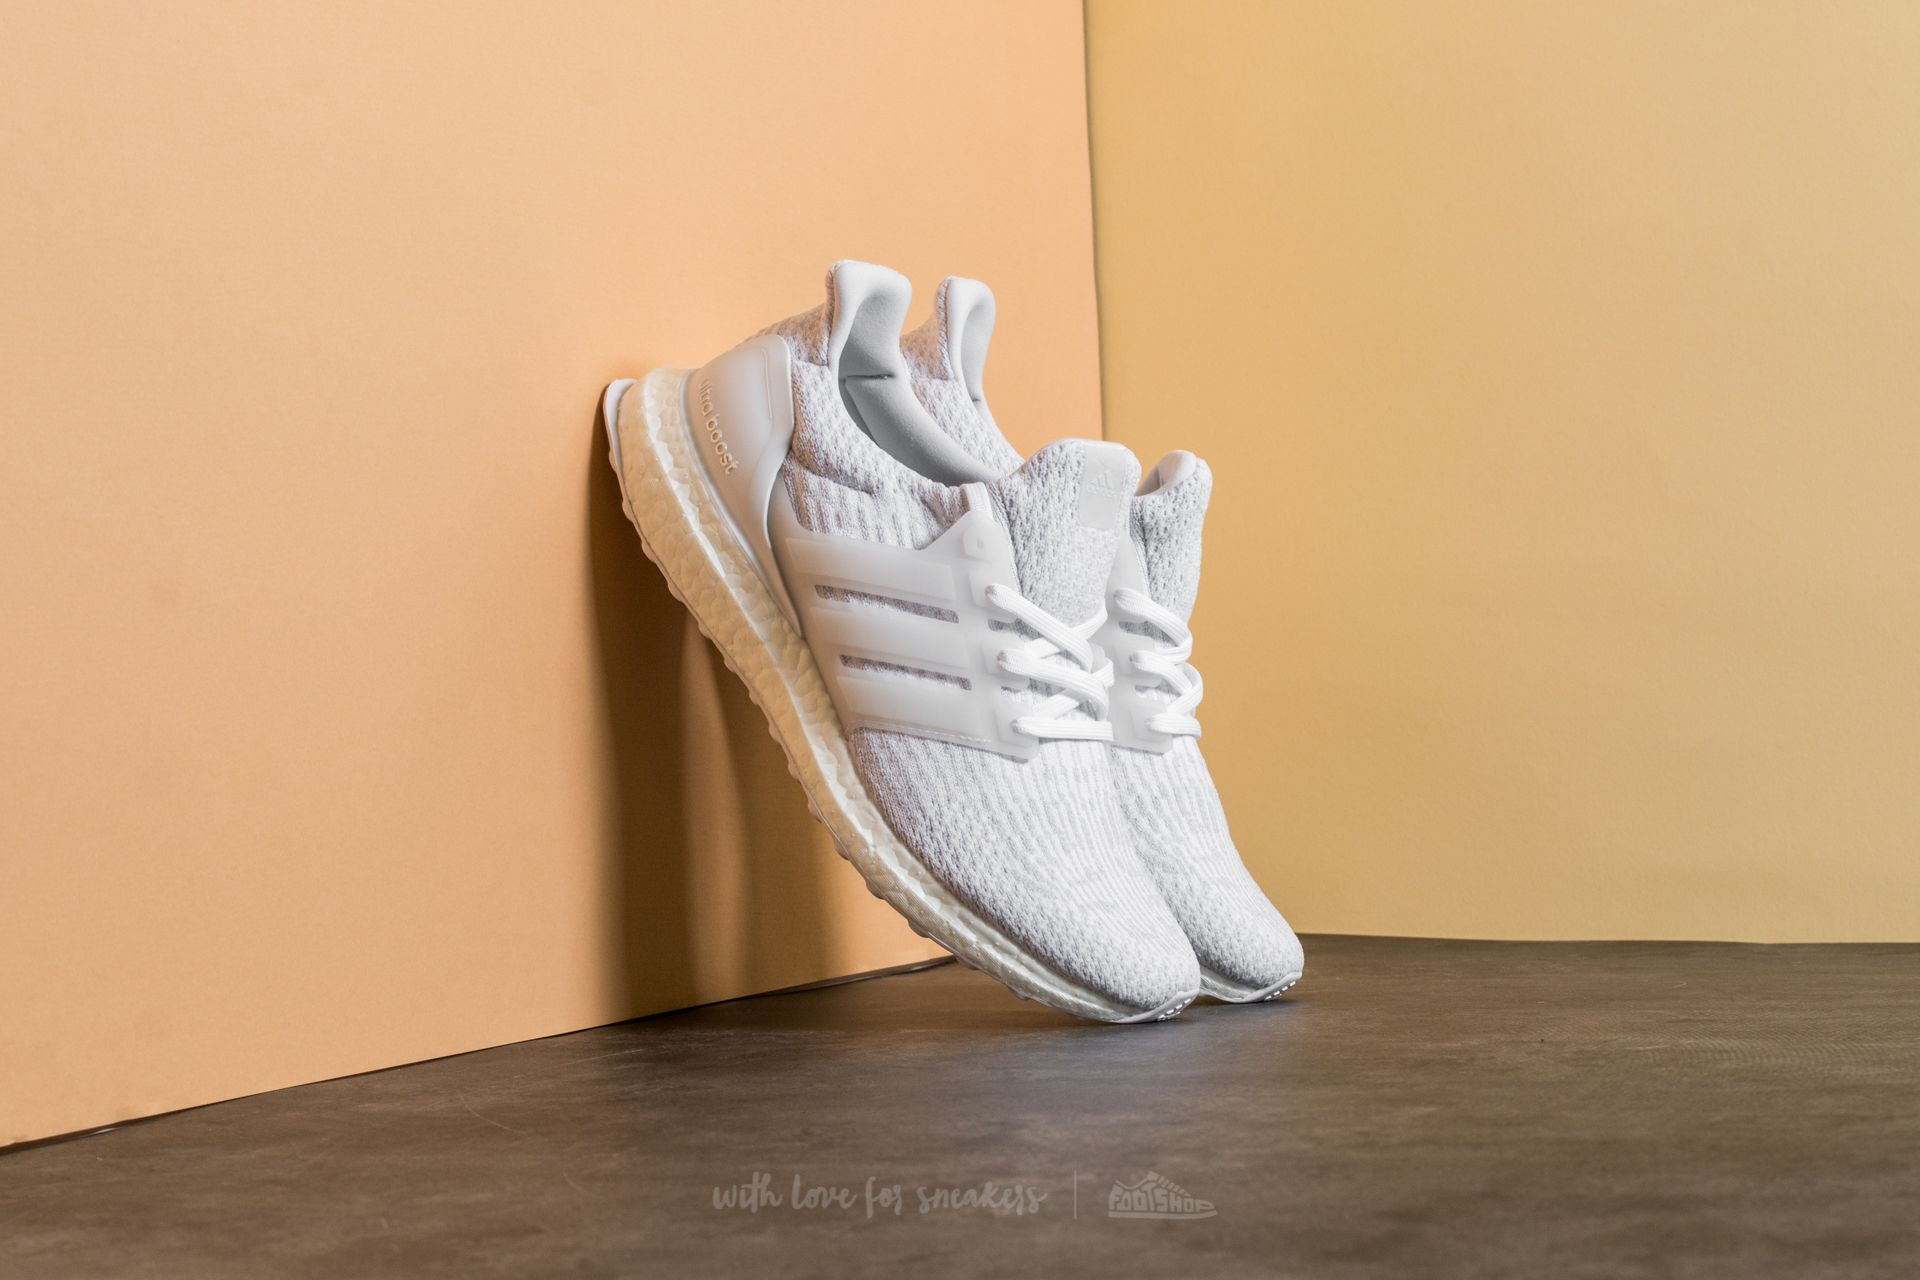 007959e240d7 adidas UltraBoost Ftw White  Crystal White